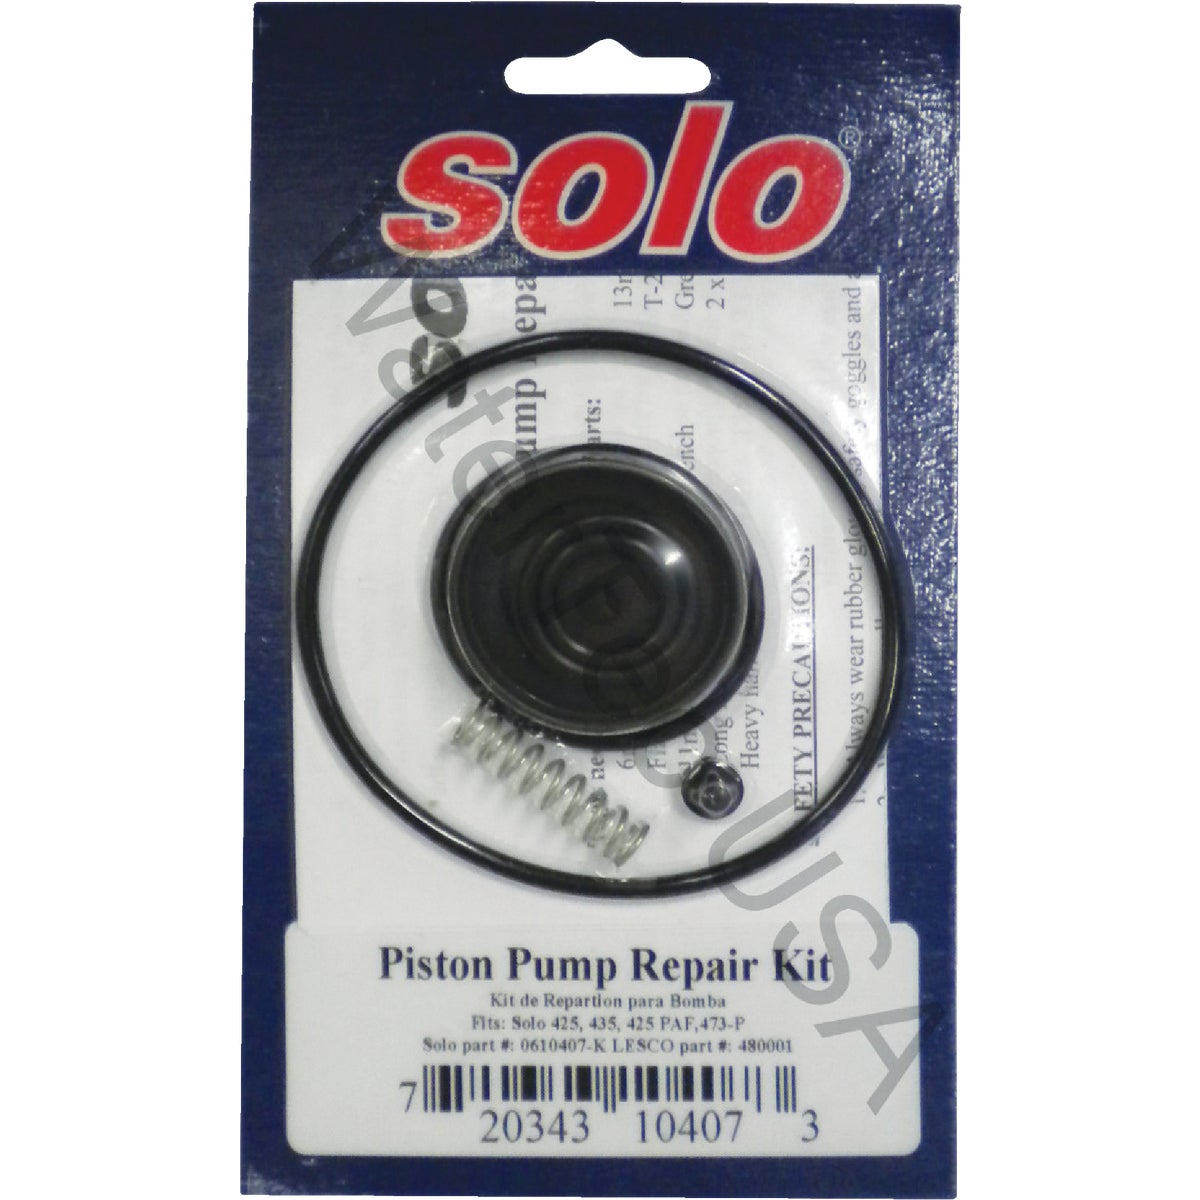 REPAIR KIT PUM - 0610407-K by Solo Inc